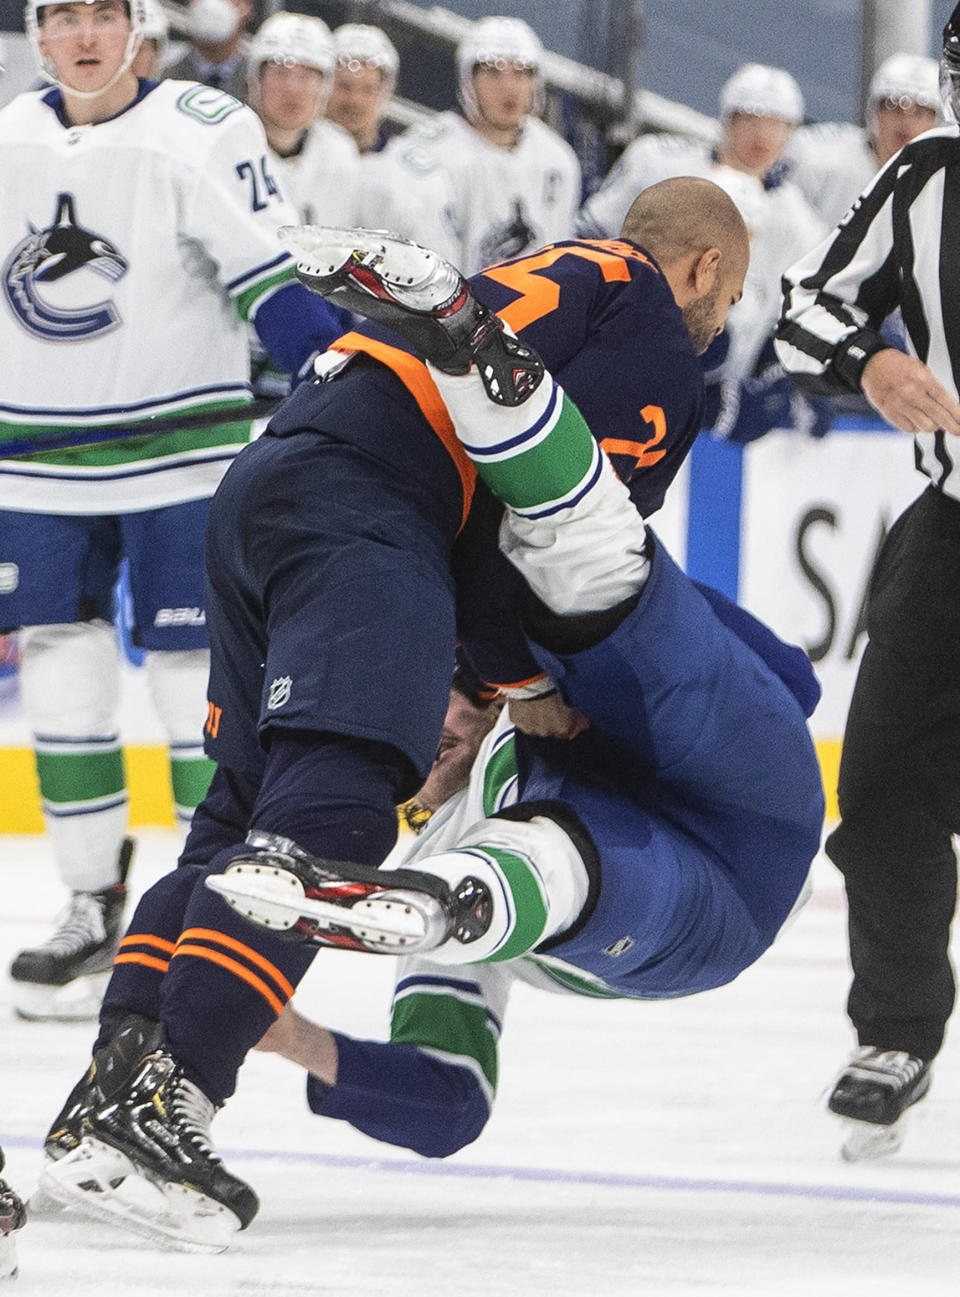 Edmonton Oilers' Darnell Nurse (25) and Vancouver Canucks' Zack MacEwen (71) fight during the third period of an NHL hockey game Thursday, May, 6, 2021, in Edmonton, Alberta. (Jason Franson/The Canadian Press via AP)